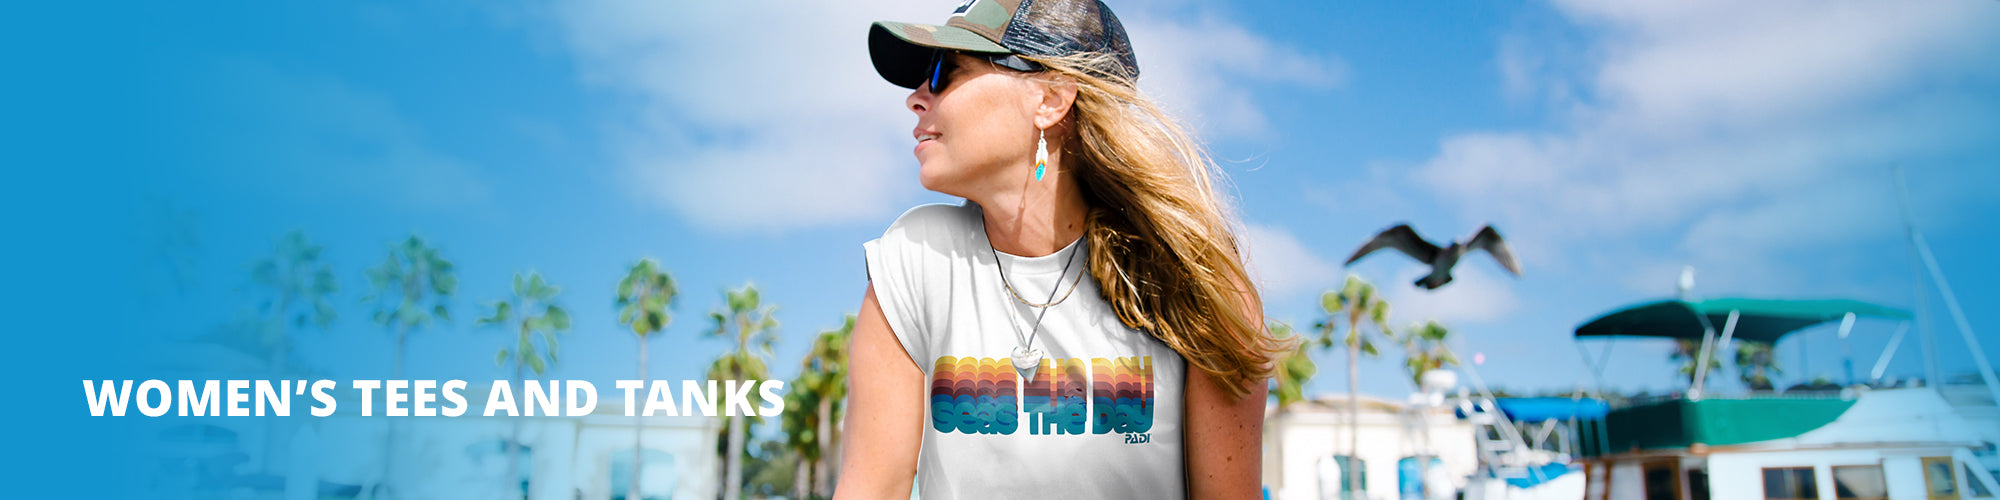 Women's t-shirts and tanks collection page.